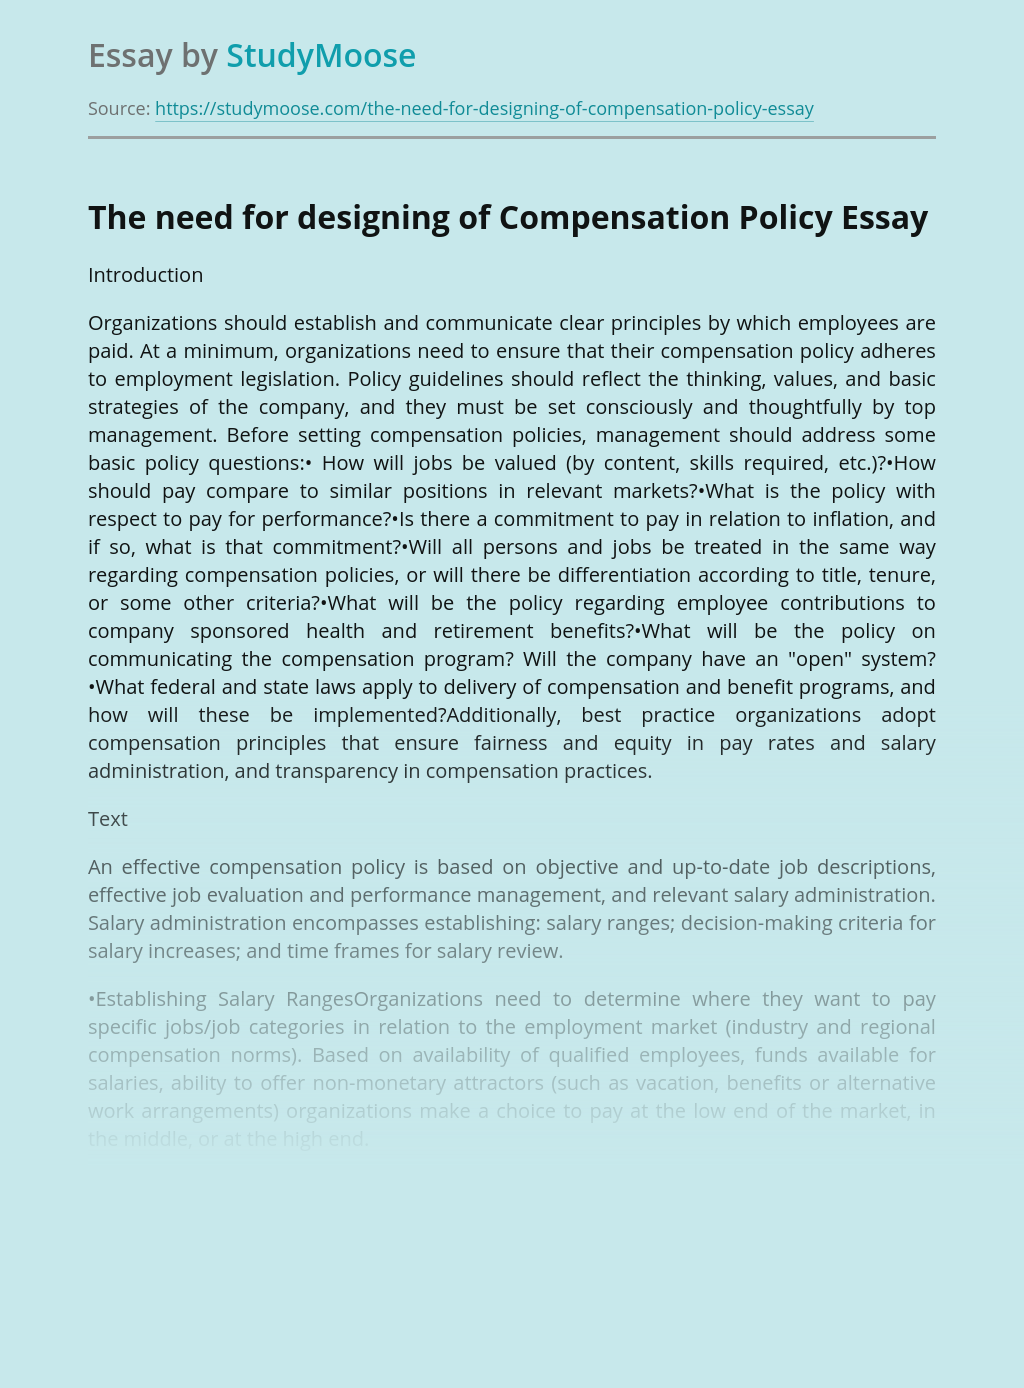 The need for designing of Compensation Policy